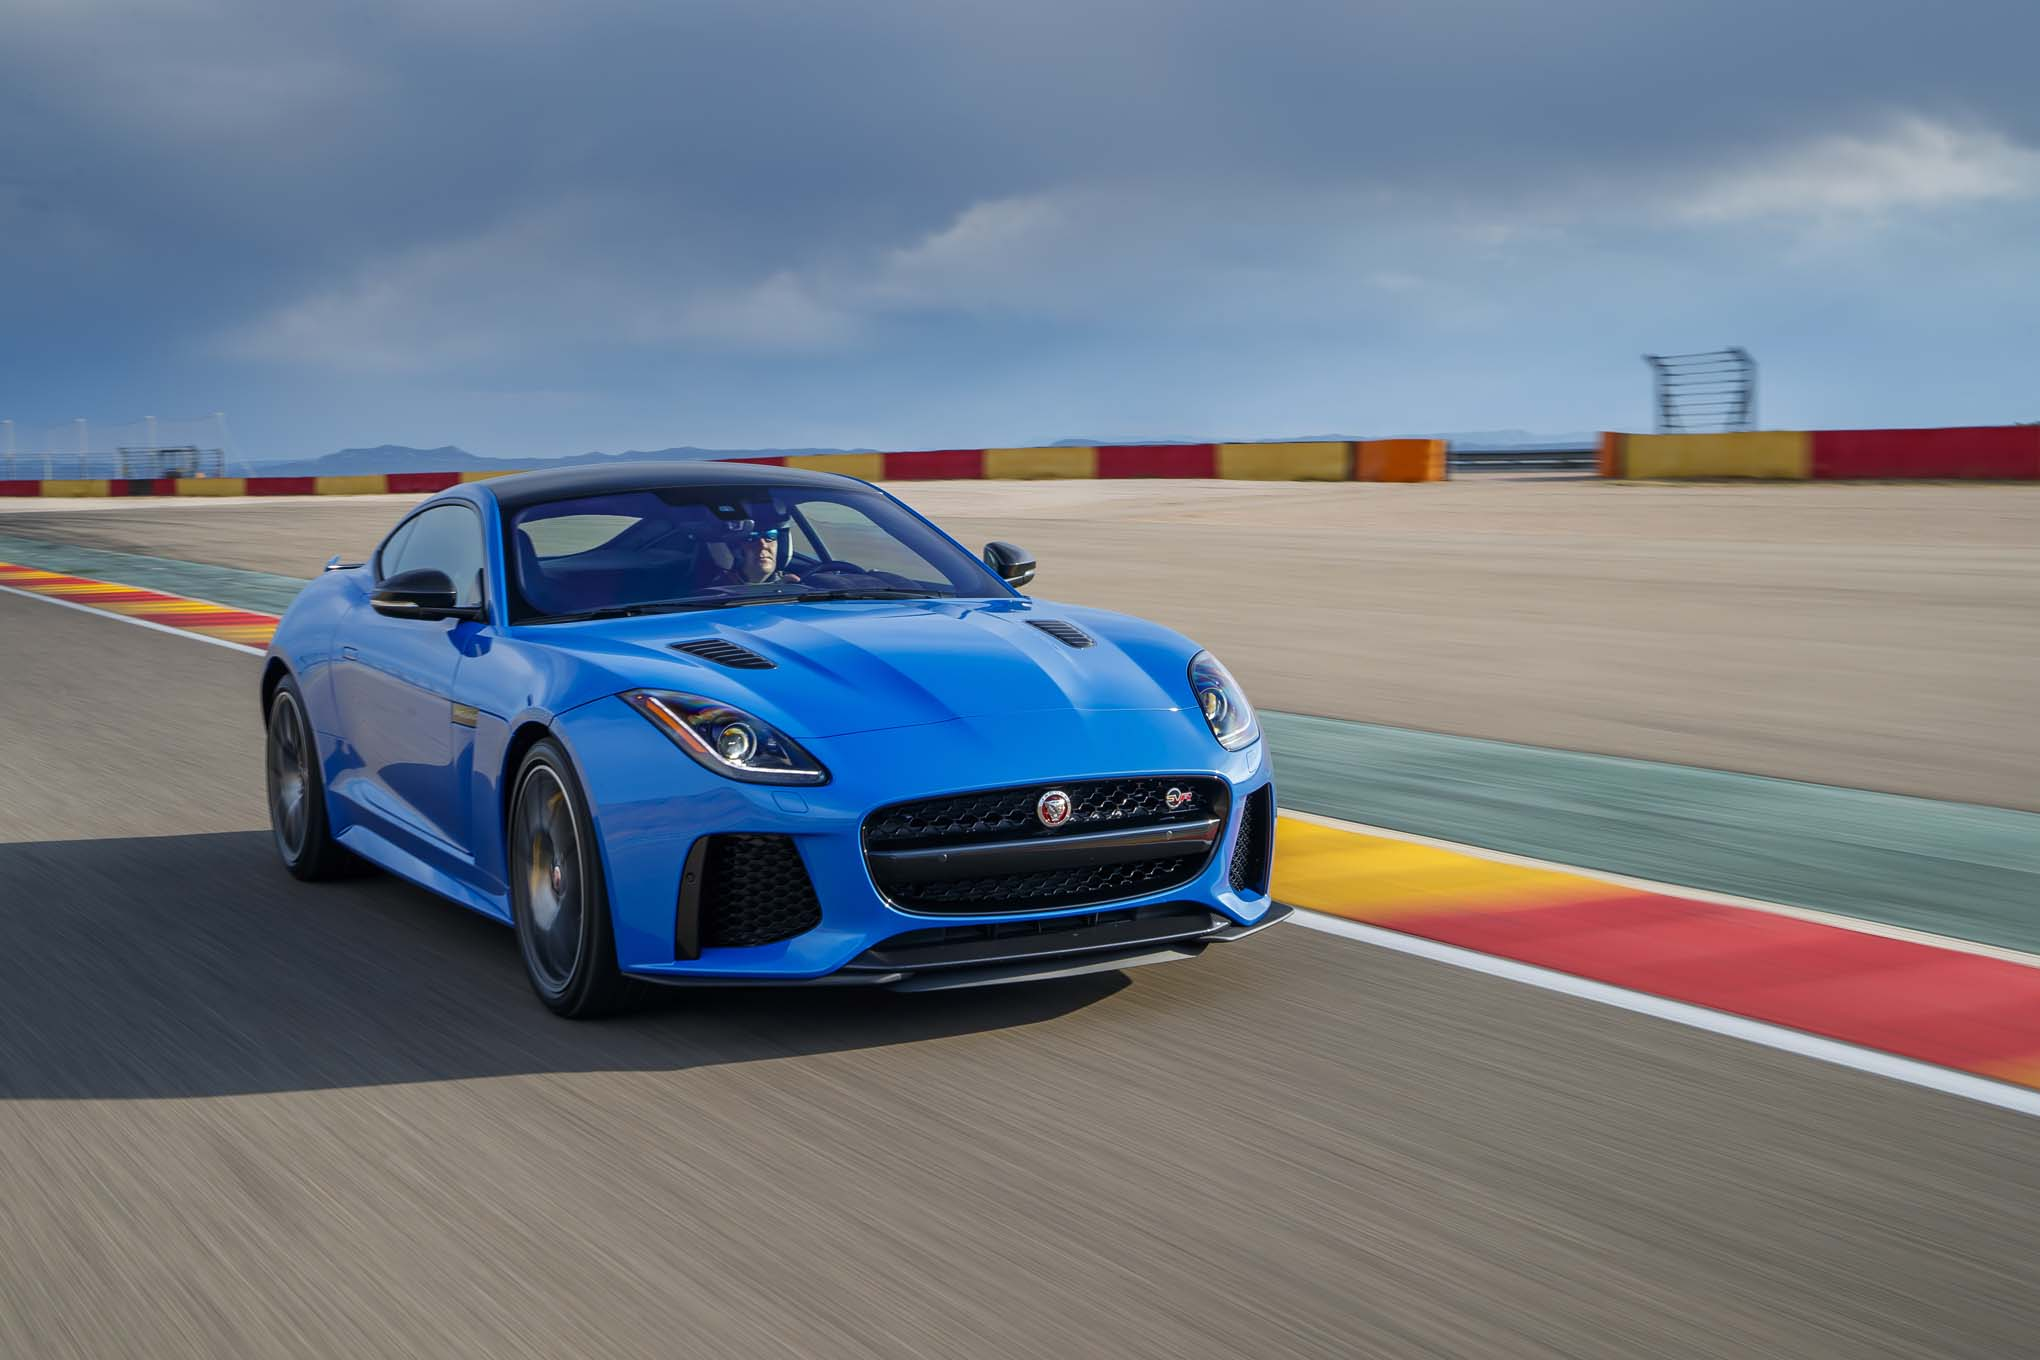 2017 Jaguar F Type SVR Coupe Front Three Quarter In Motion 04 3